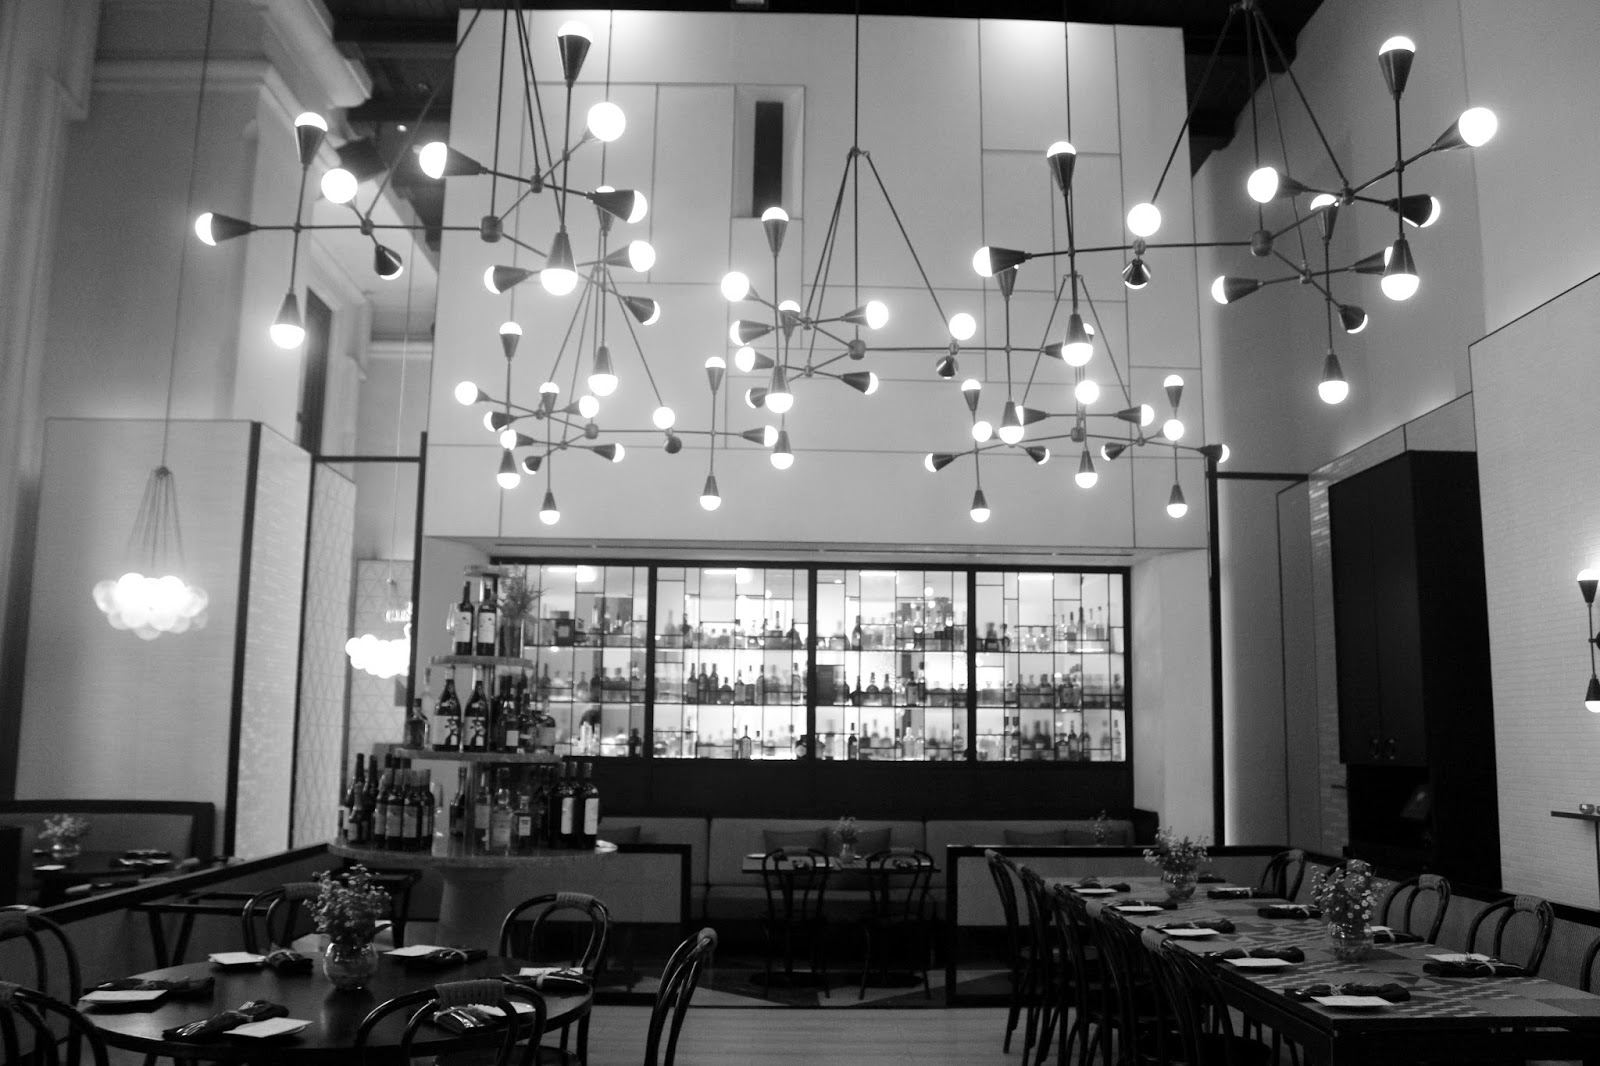 time fancy dining room. Interesting Time Iu0027m Happy To Hear This News And Feel So Excited Visit Her Even In Lunch  Time As You Might Know That GIA Represented By A Sexy Classy Energetic  For Time Fancy Dining Room